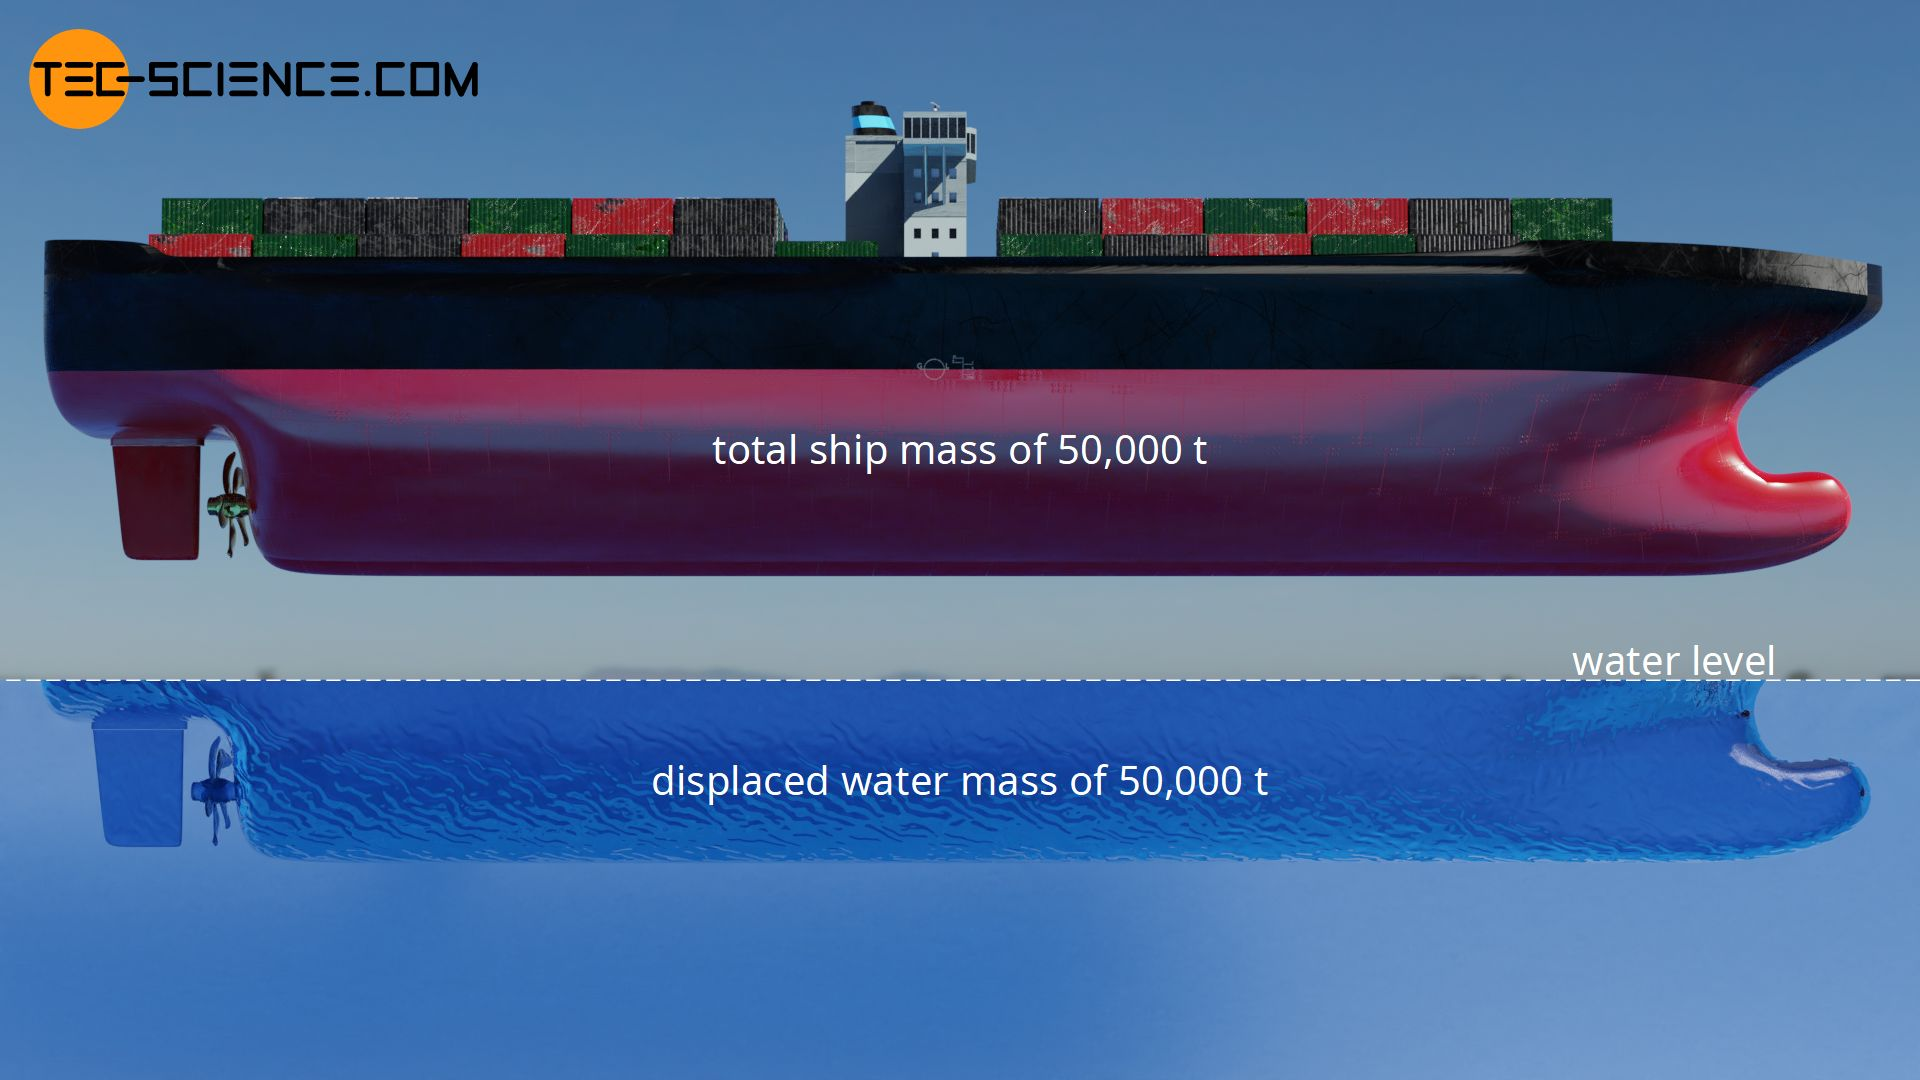 Displaced water mass for the buoyancy of a ship